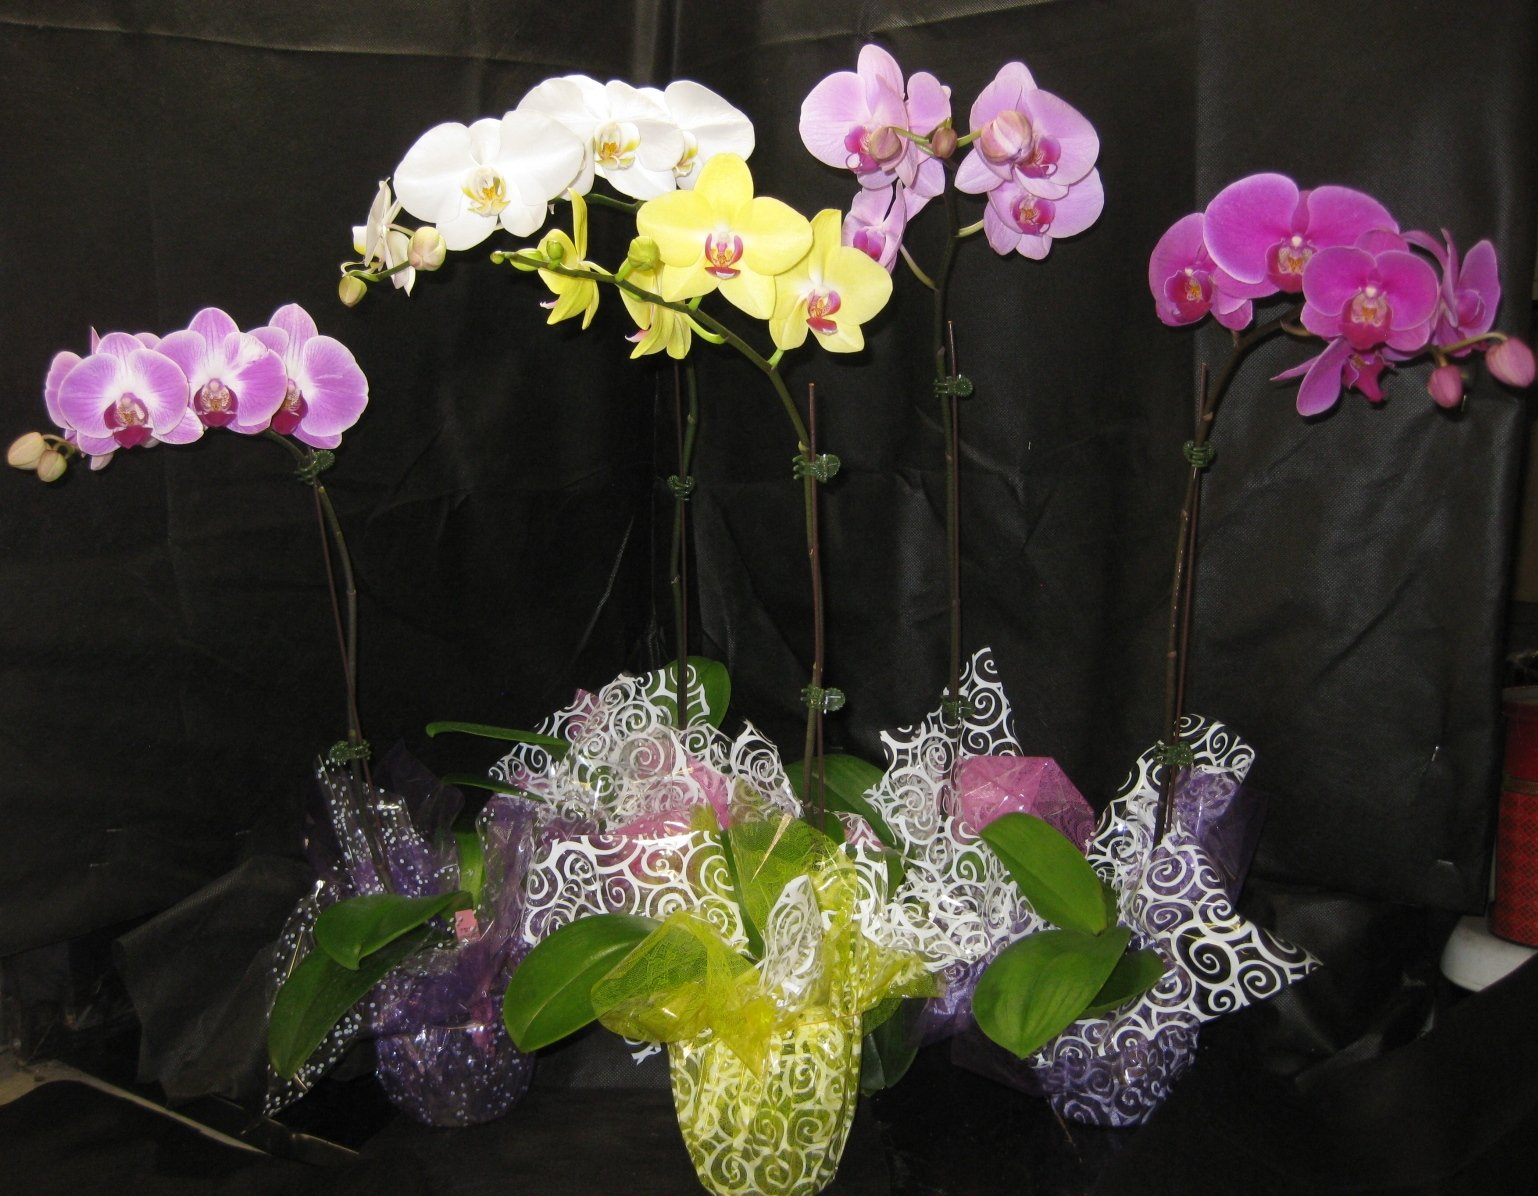 5 Blooming / Budded FLOWERING Phalaenopsis Orchid PLANTS-ADDS ELEGANT & STYLISH DECOR- Perfect Gift for any occasion